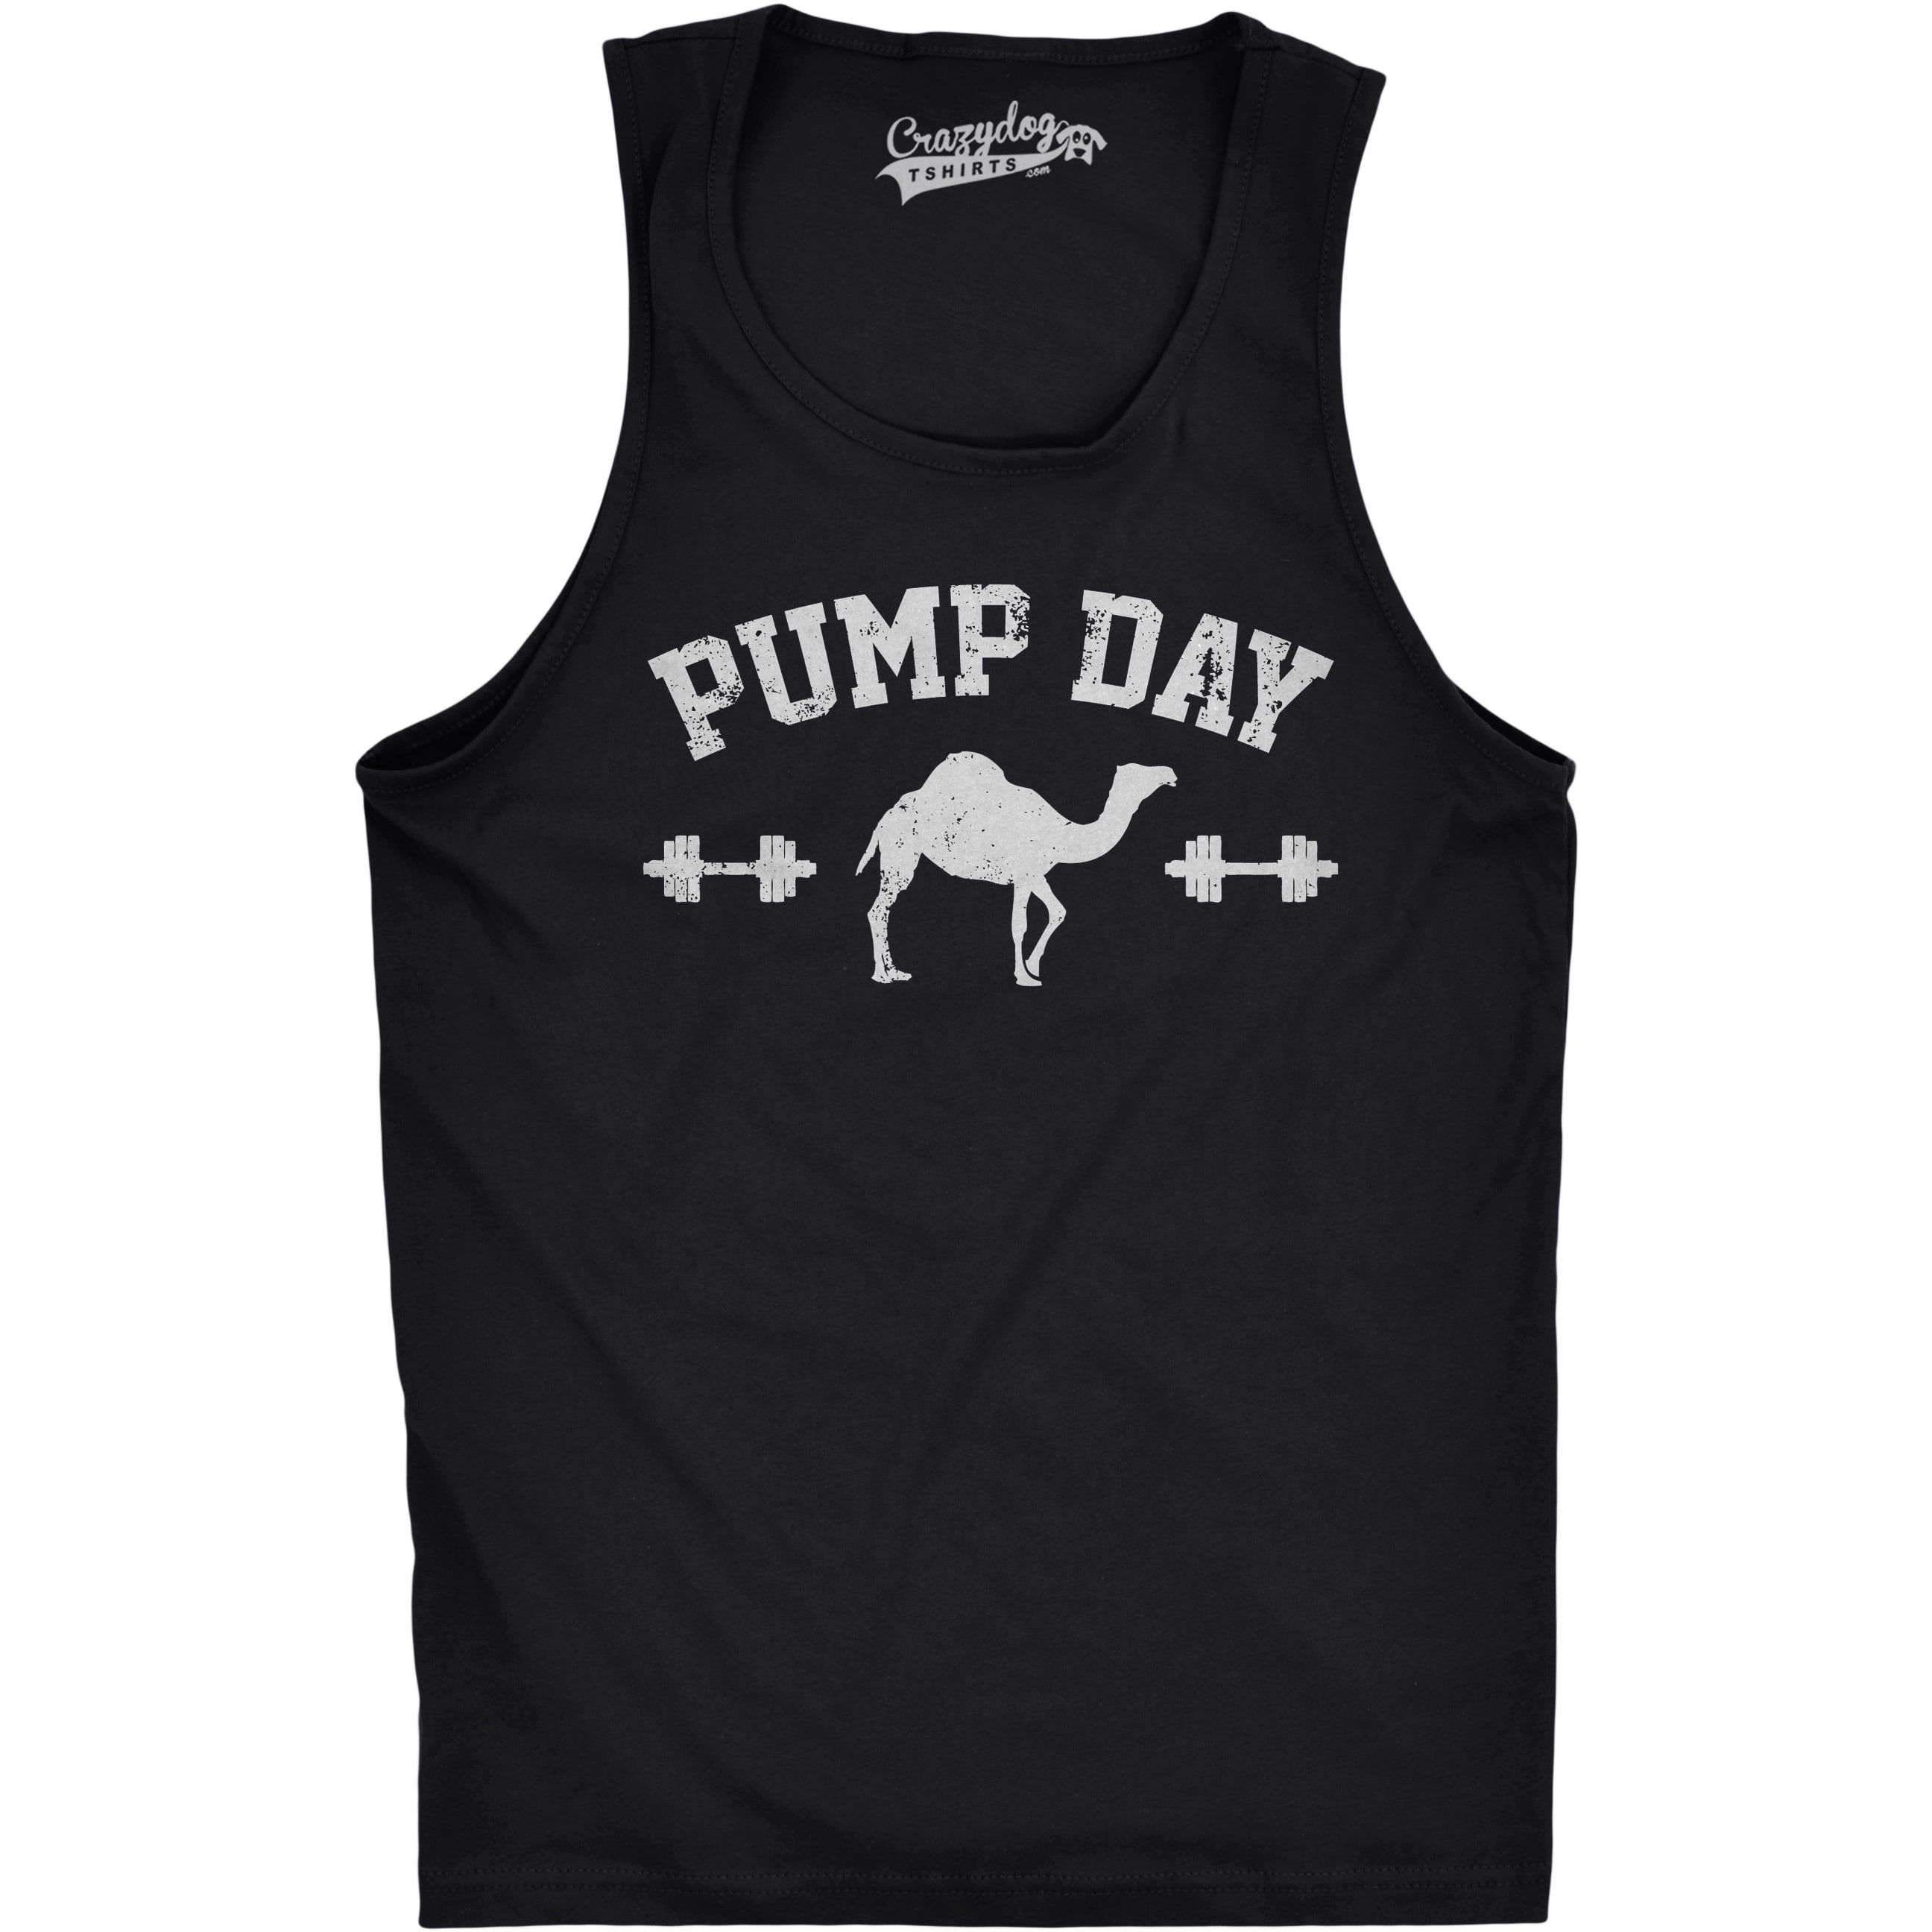 09a9fc29f Crazy Dog T-shirts Mens Pump Day Funny Camel Hump Day Workout Sleeveless  Fitness Tank Top